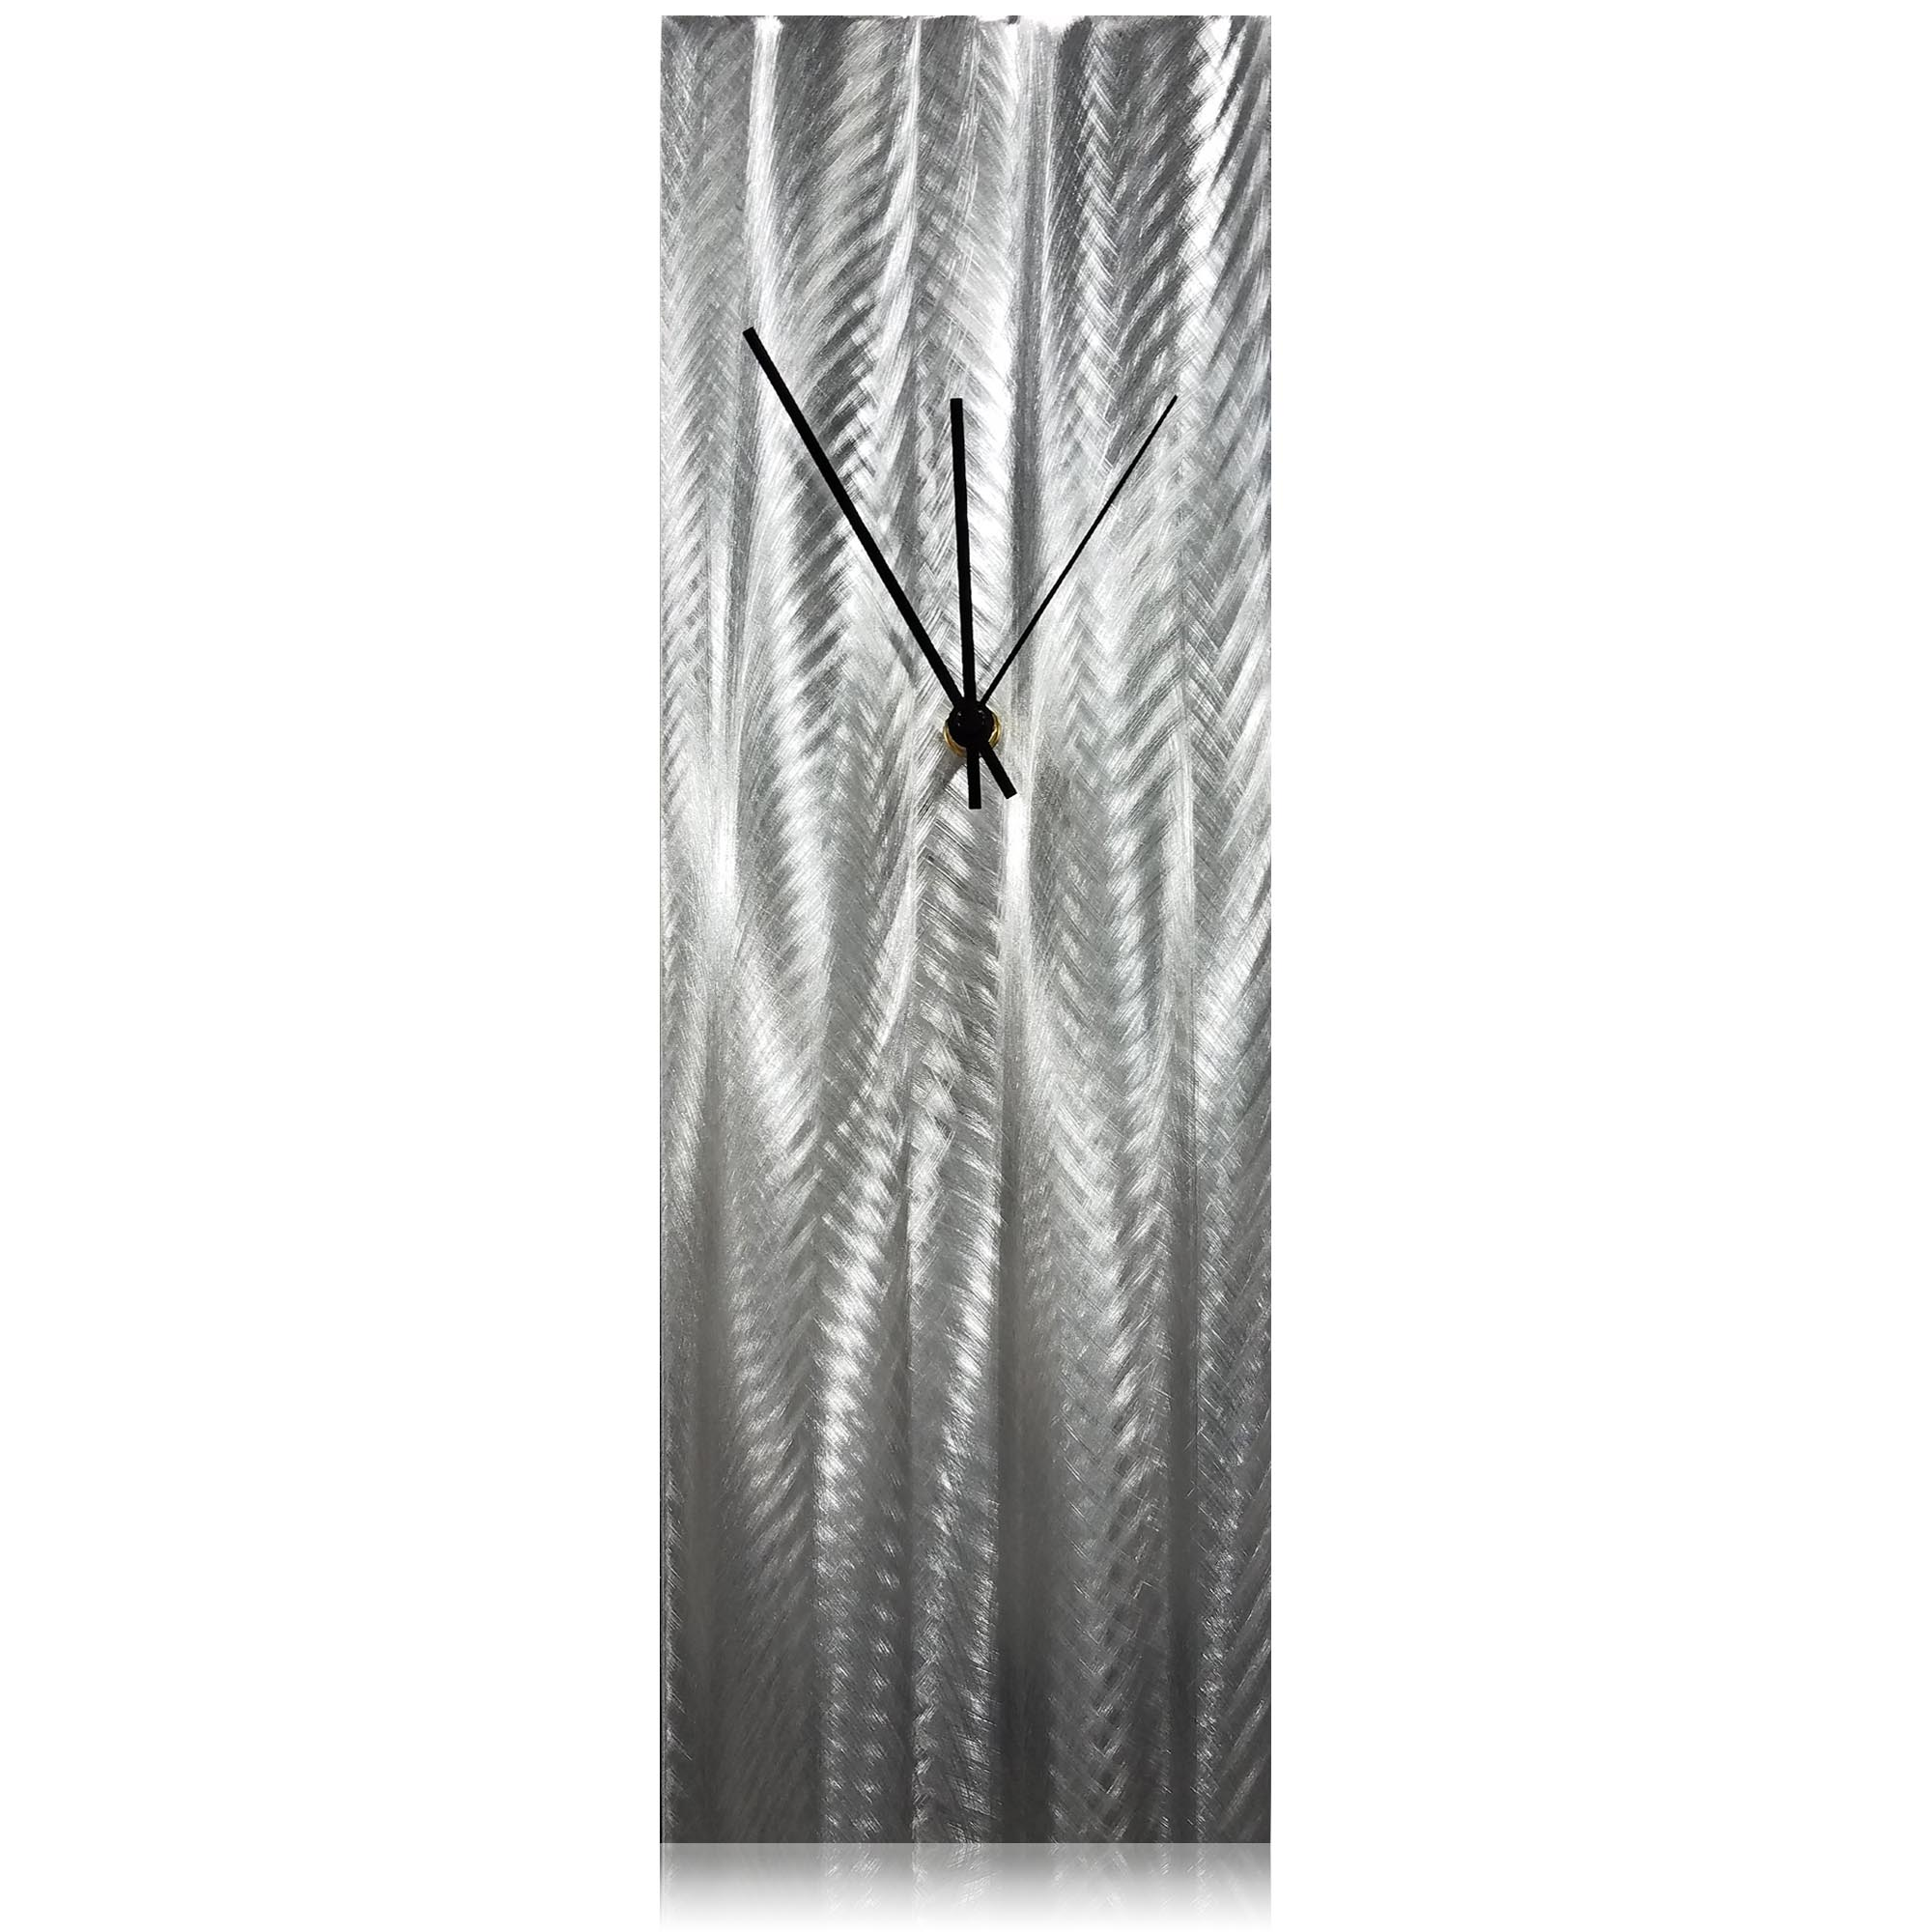 Silver Lines Desk Clock 6x18in Natural Aluminum